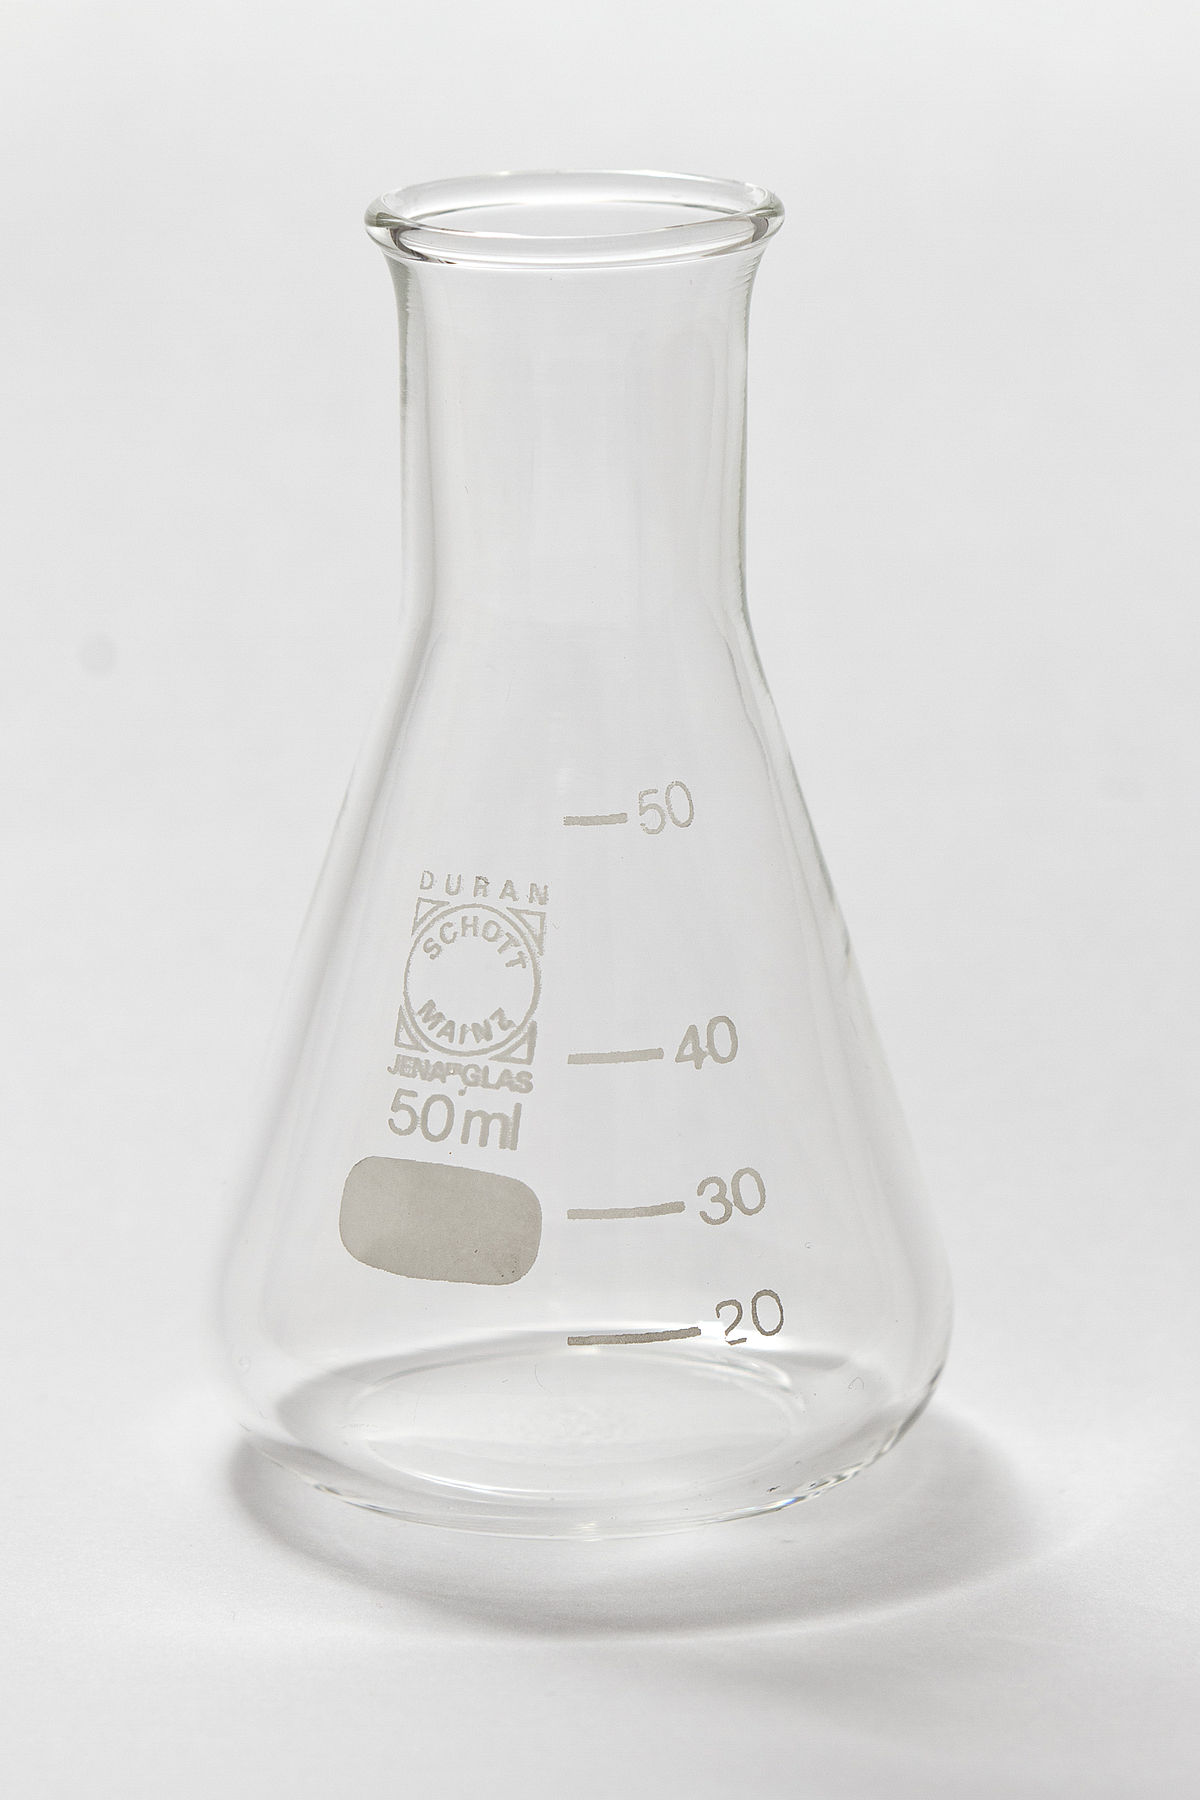 Duran erlenmeyer flask narrow neck 50ml.jpg